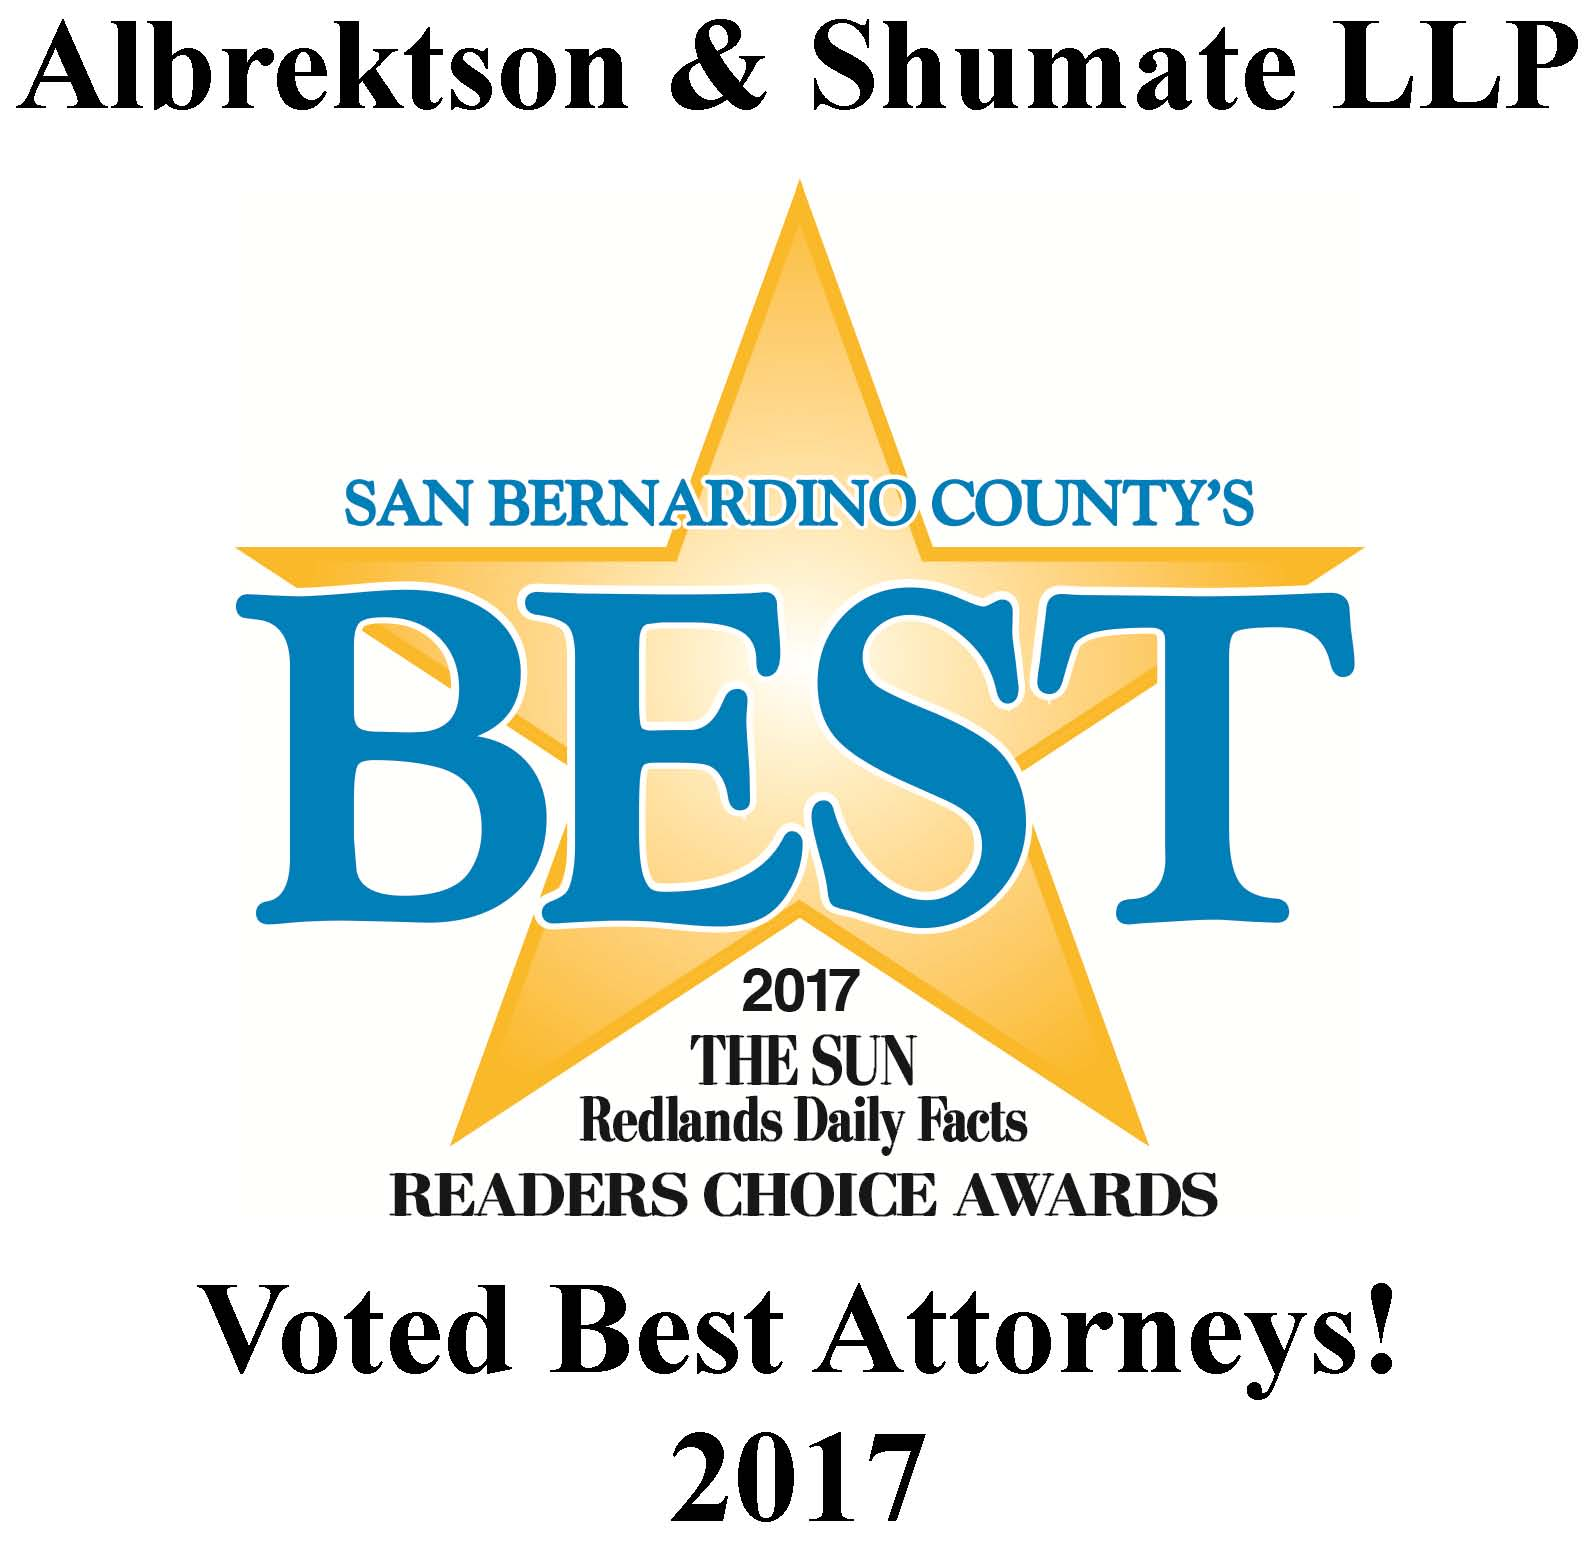 voted best attorney